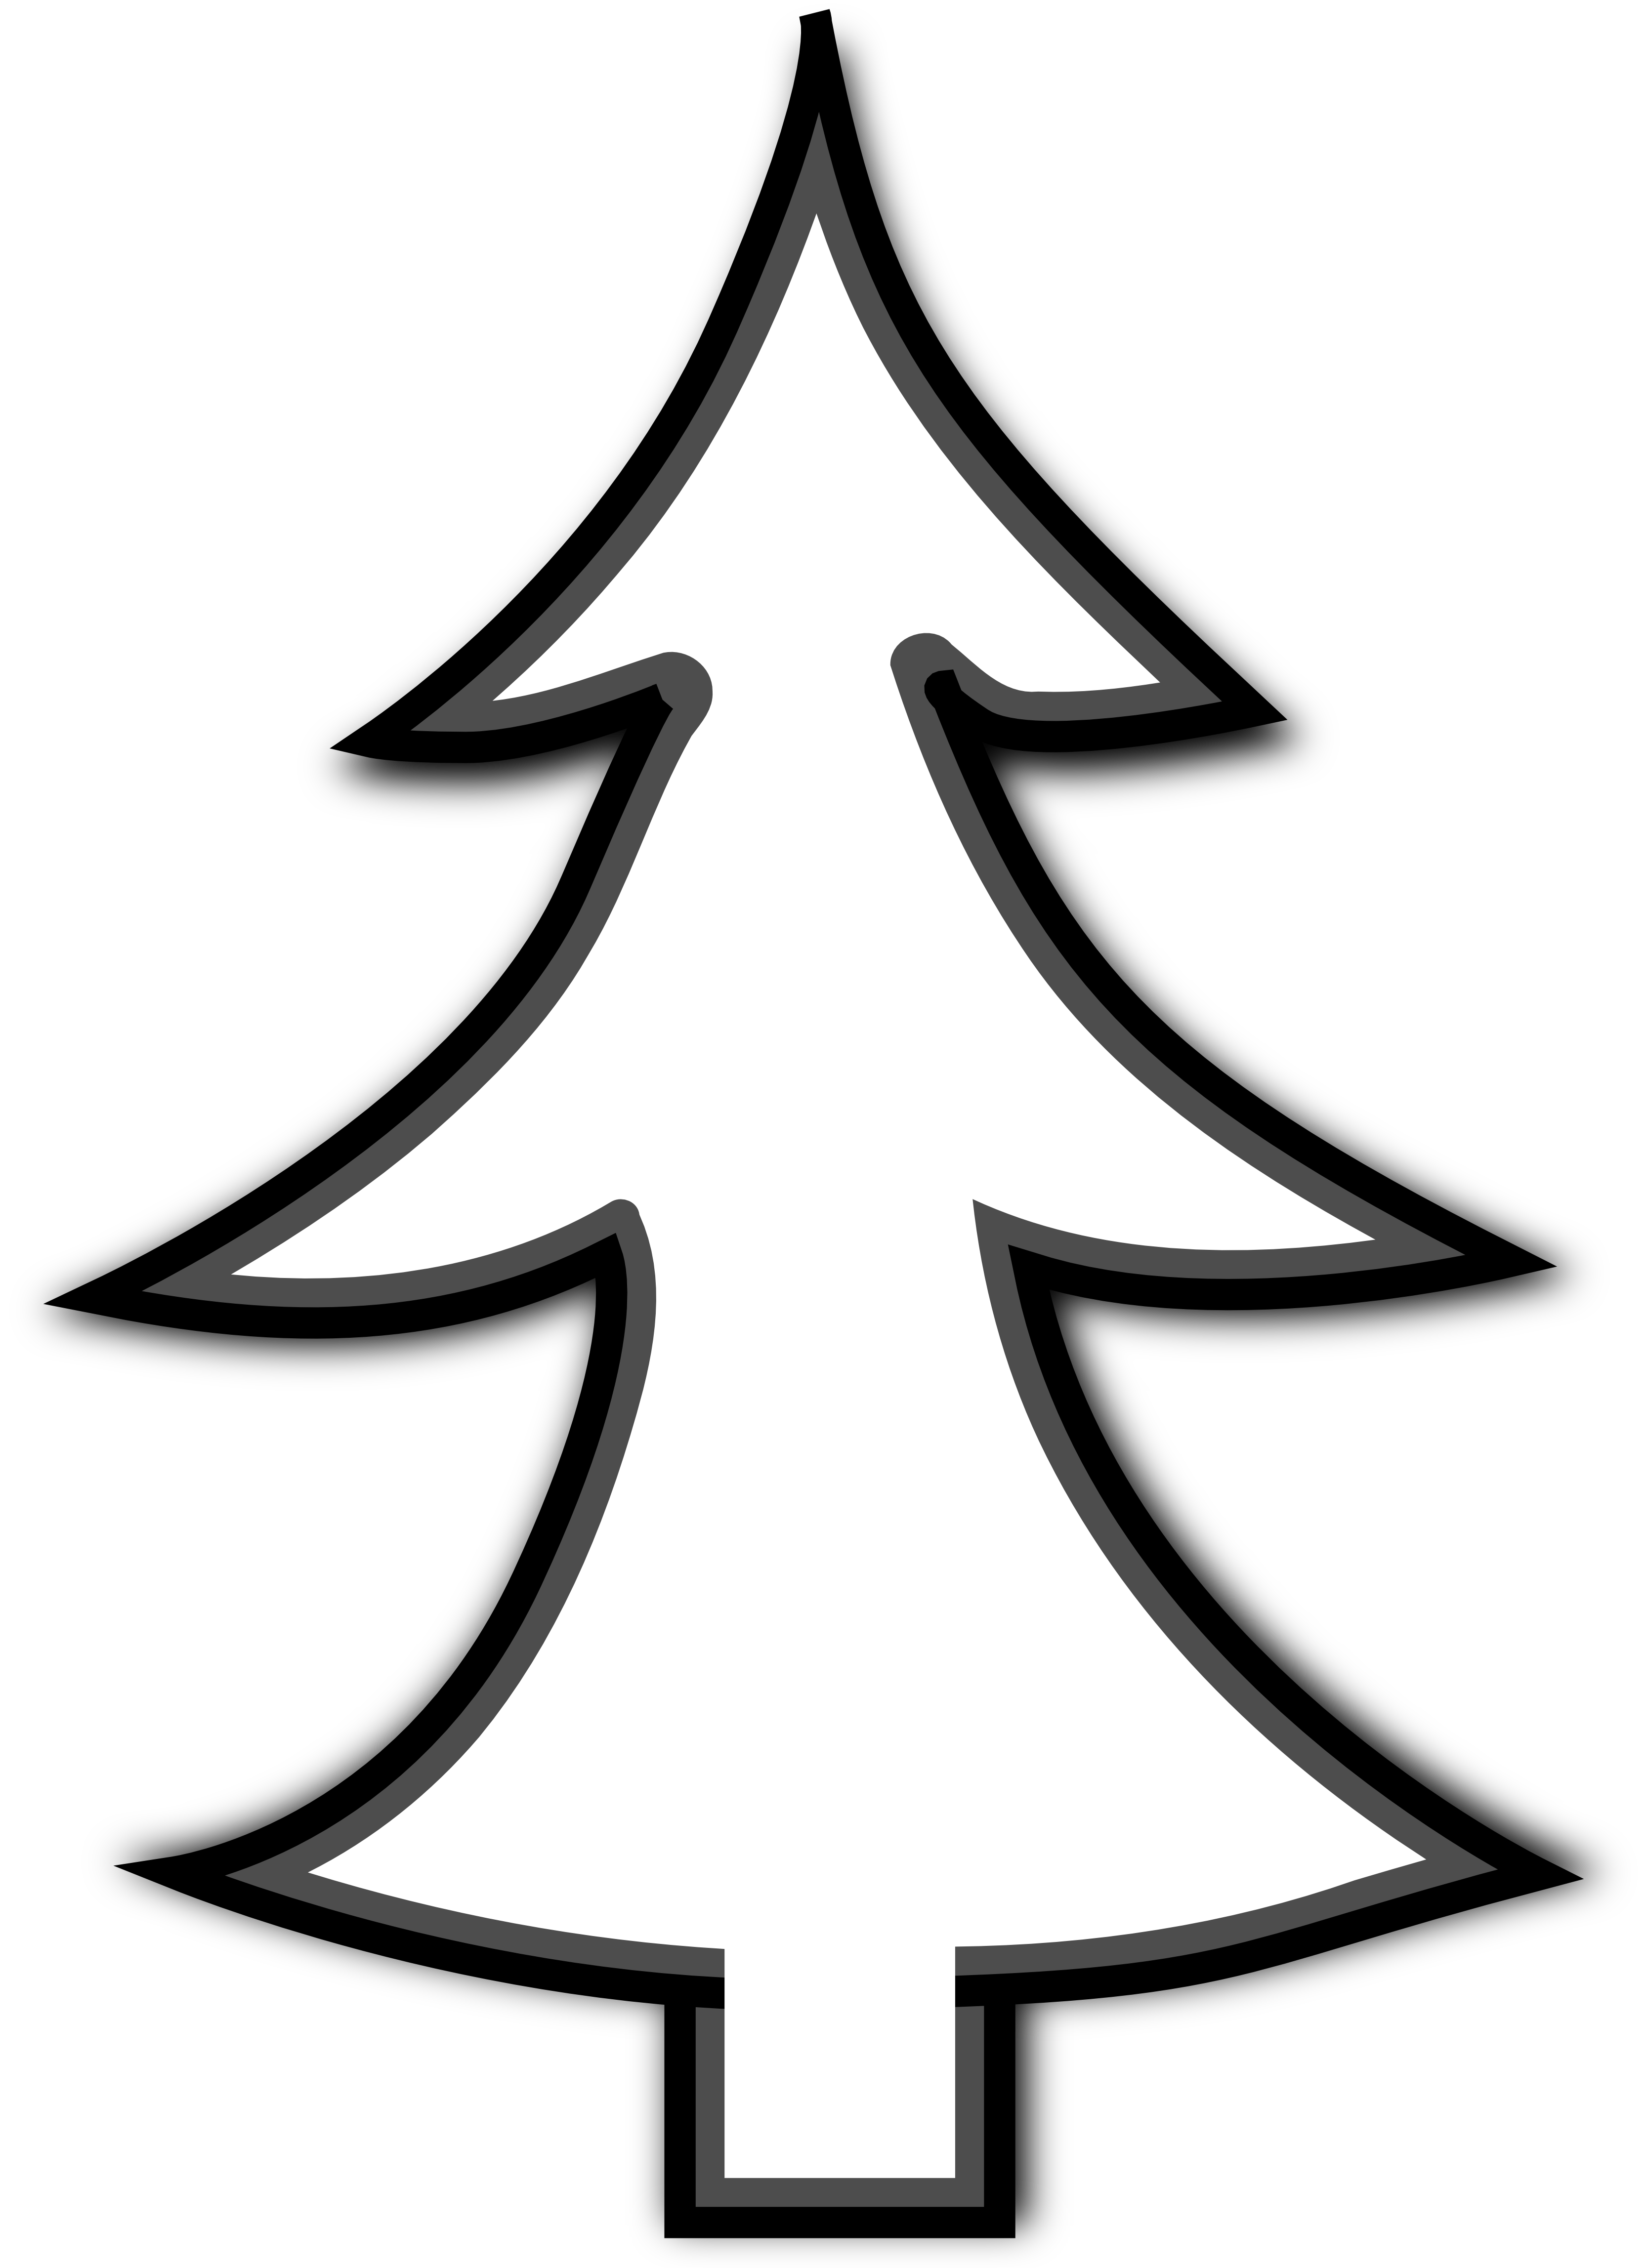 Free vector christmas clipart in black and white picture black and white download Free Black And White Free Clipart, Download Free Clip Art ... picture black and white download